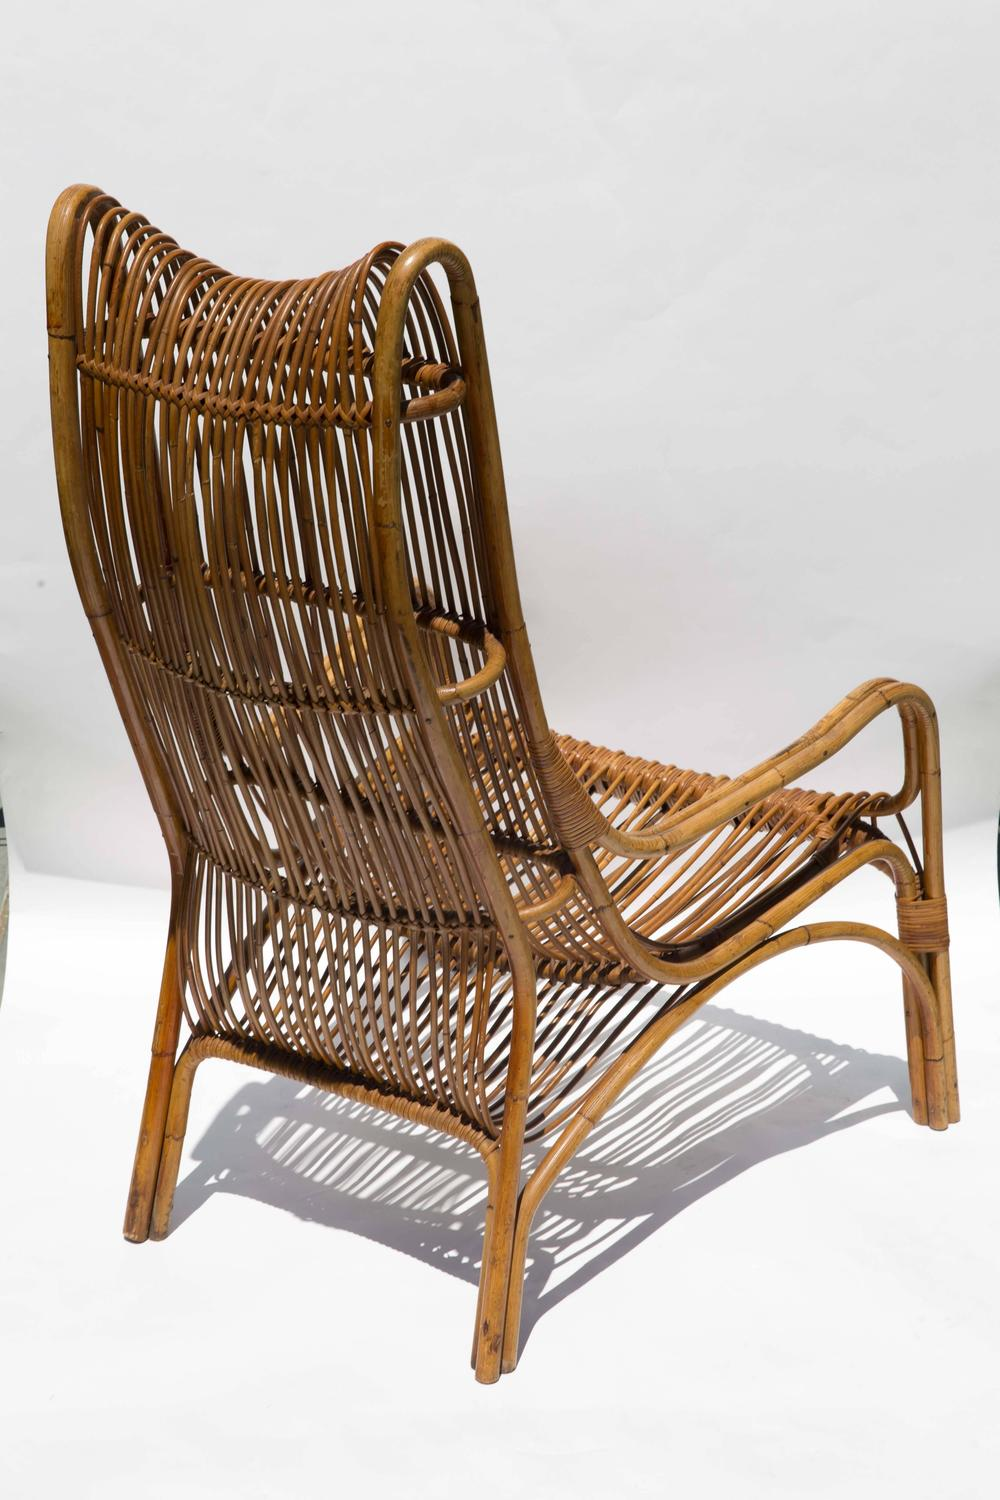 Highback Rattan Armchair For Sale at 1stdibs